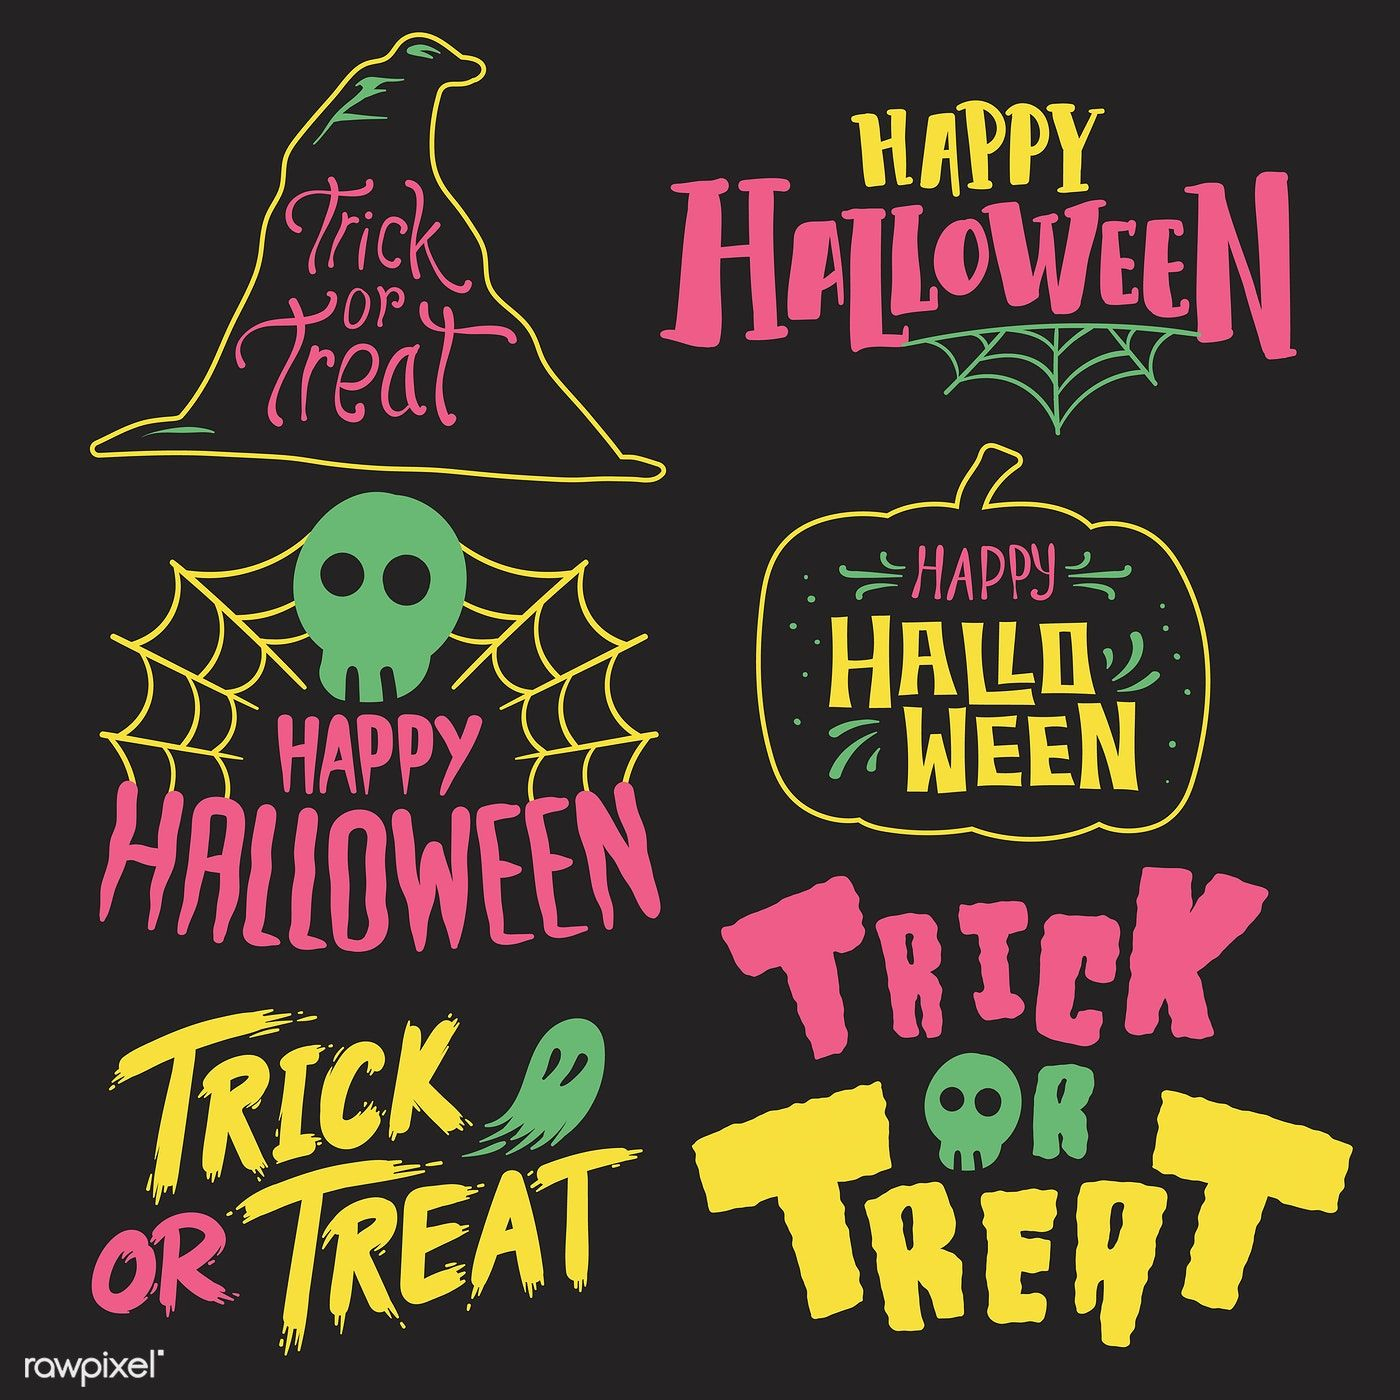 Set of Happy Halloween vectors free image by rawpixel